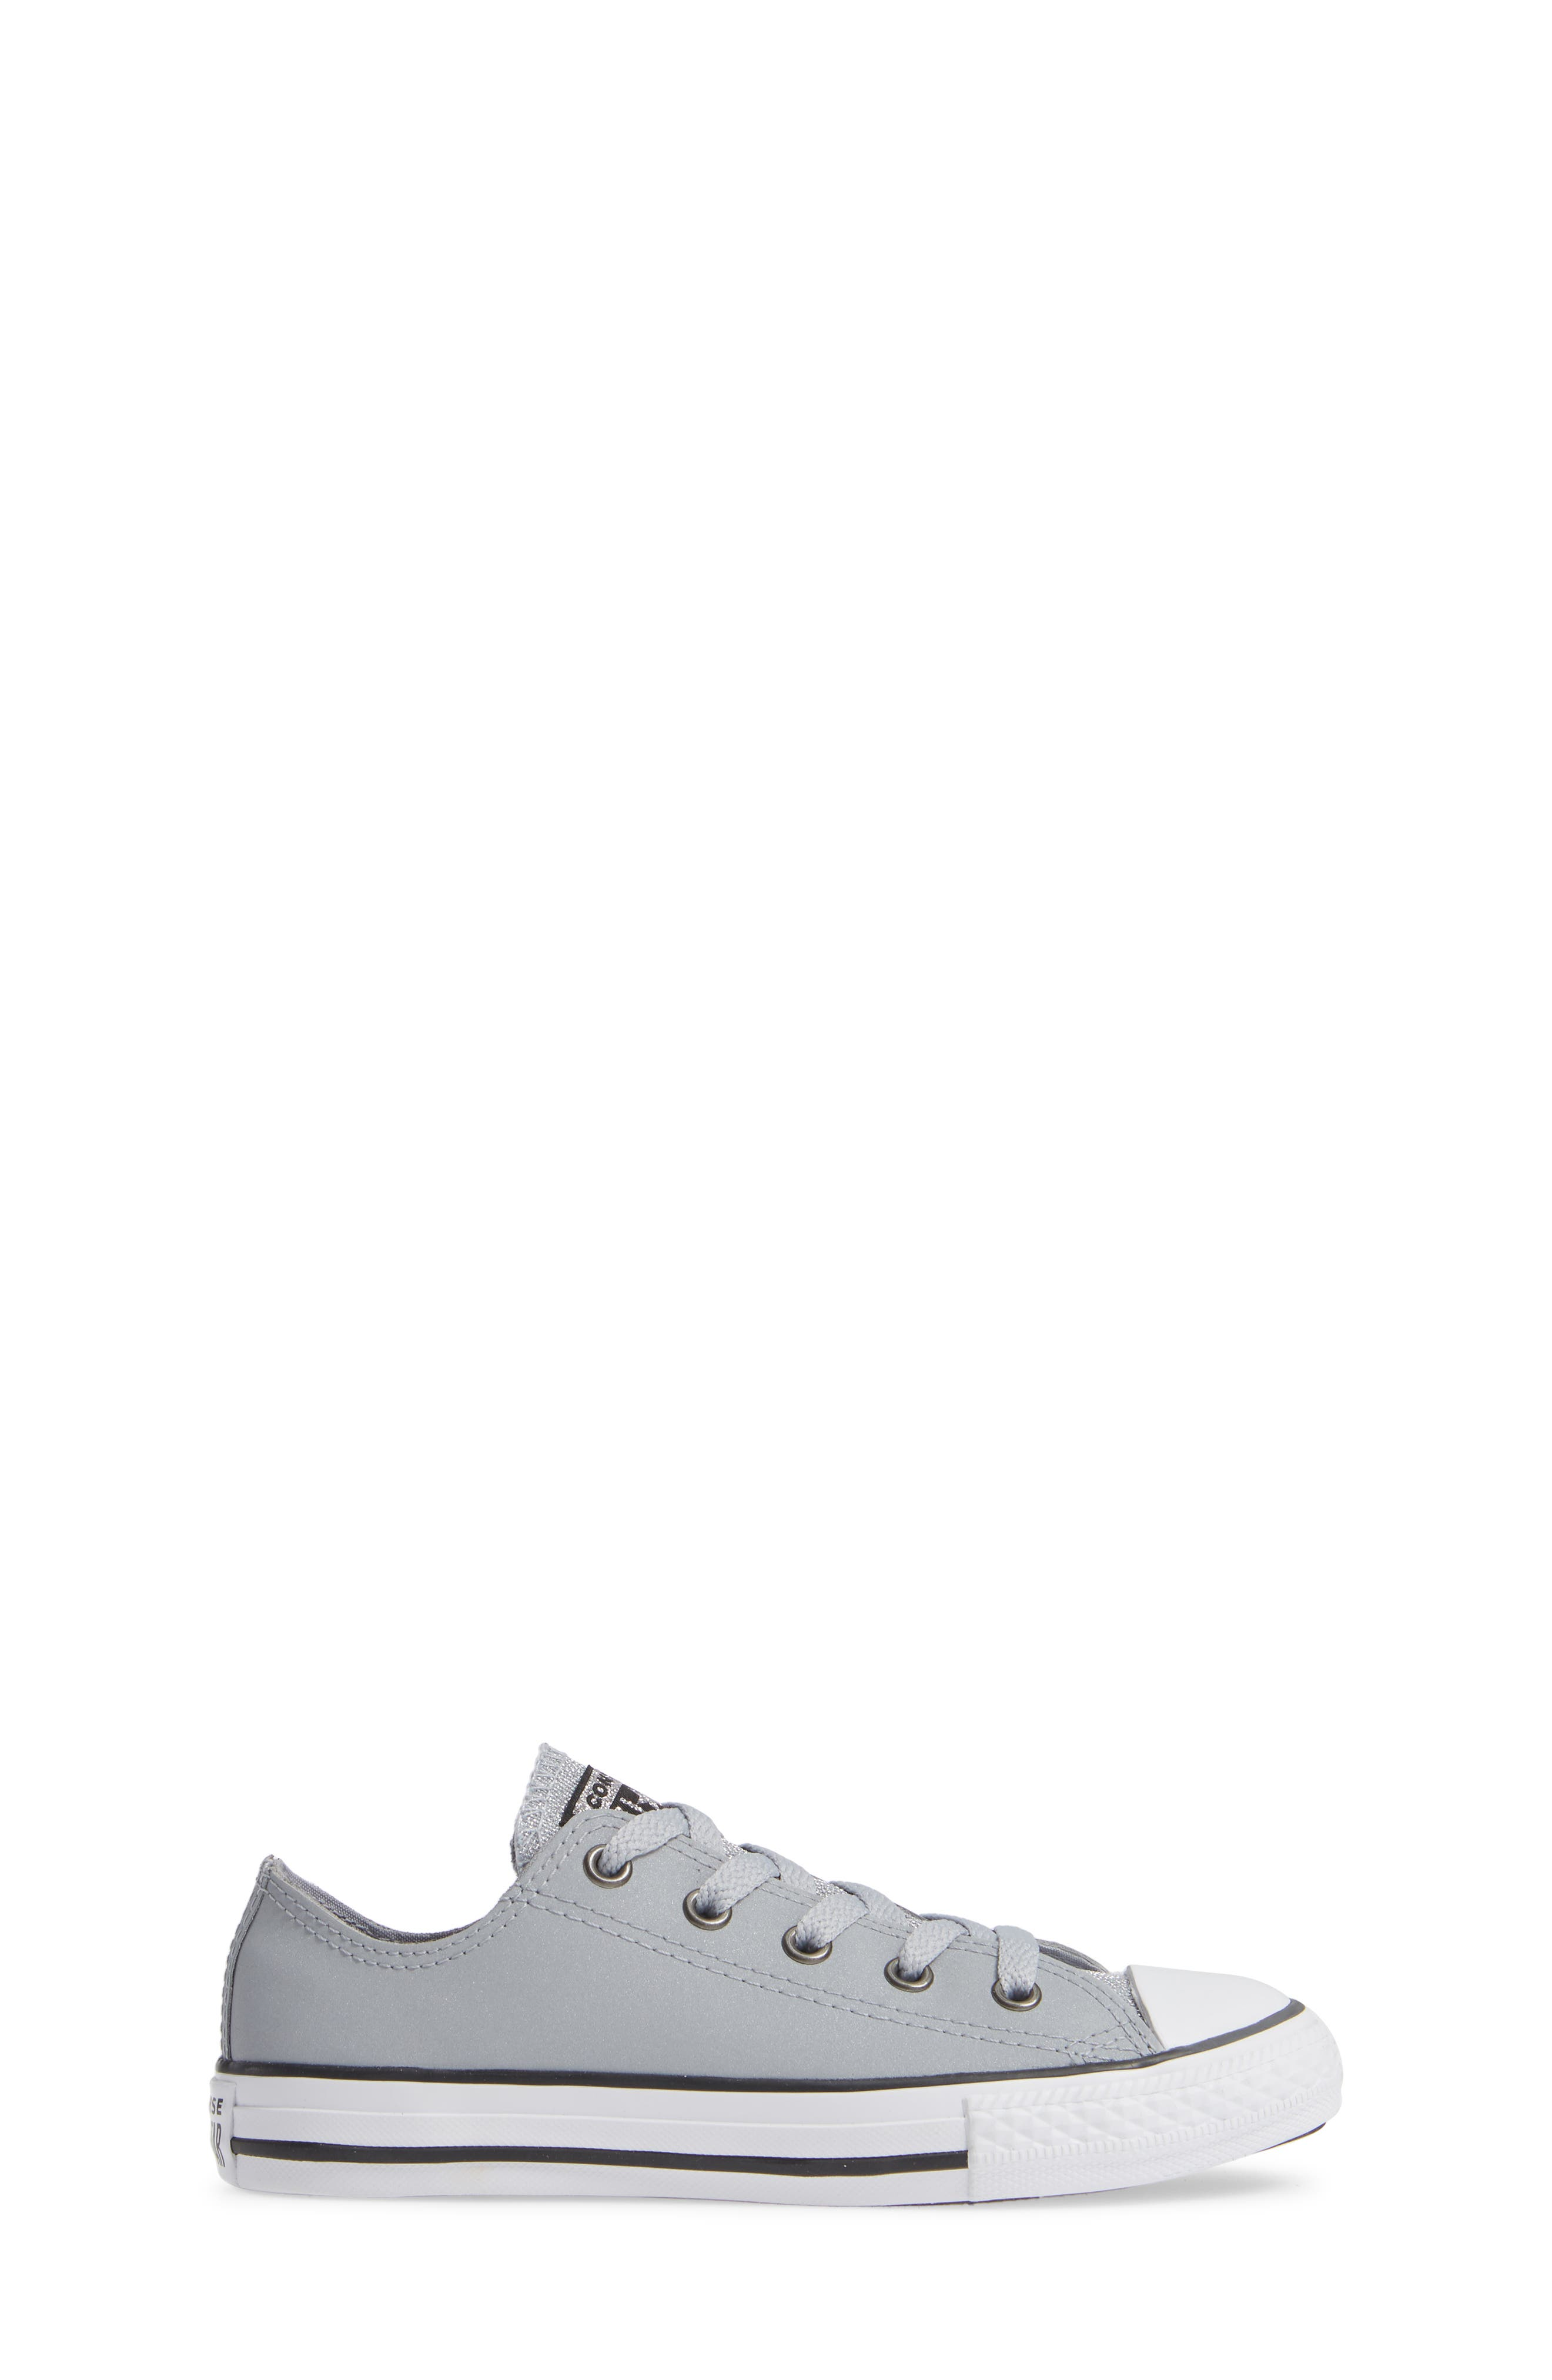 All Star<sup>®</sup> Metallic Low Top Sneaker,                             Alternate thumbnail 3, color,                             WOLF GREY